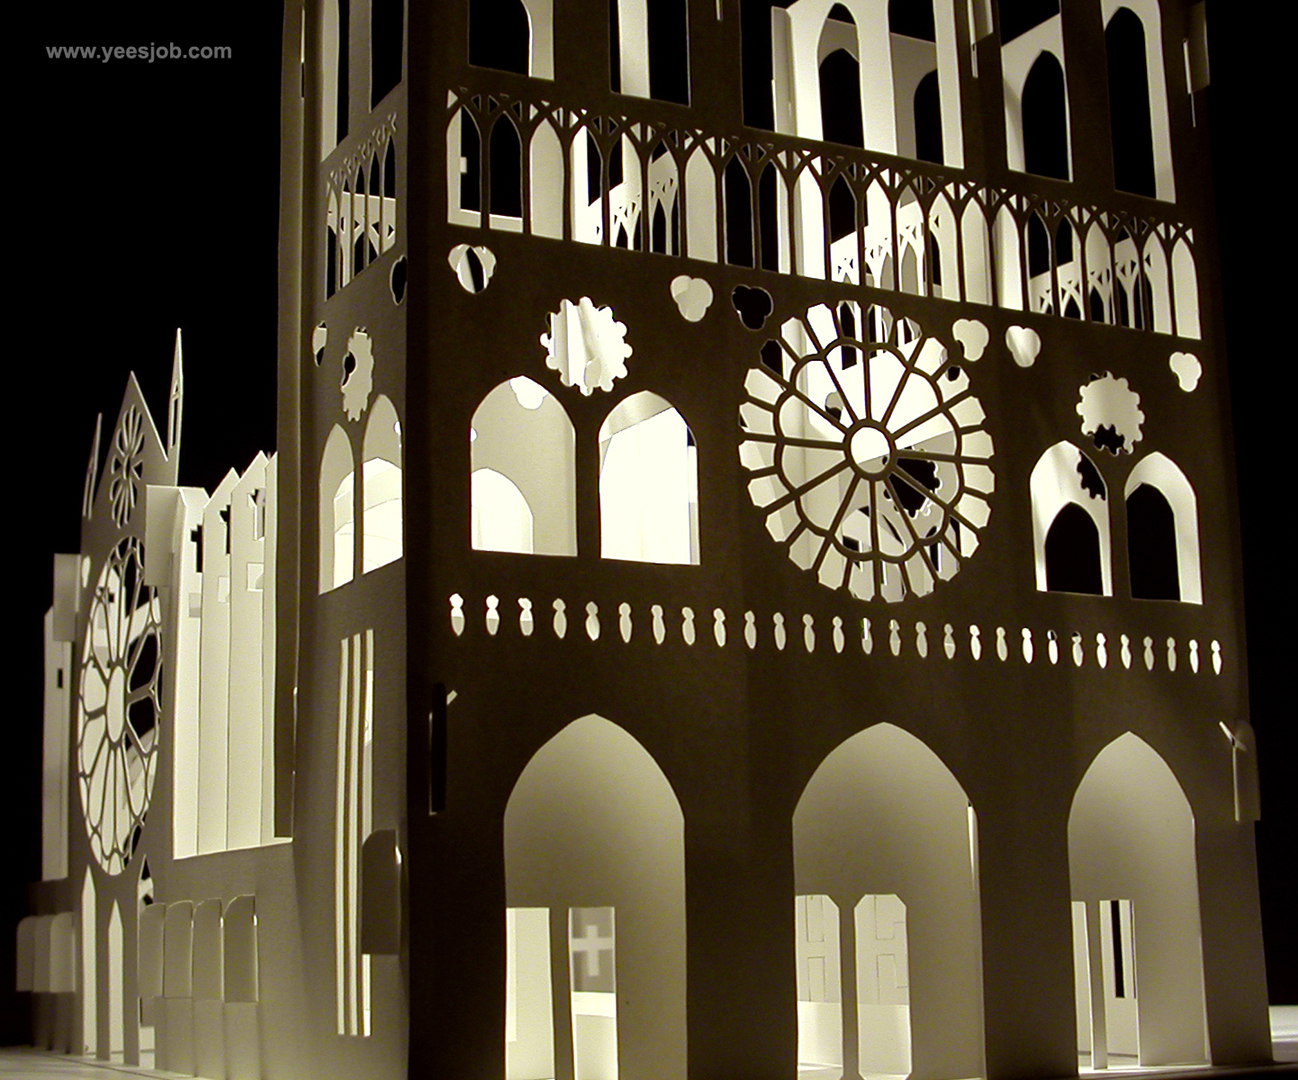 Notre Dame Cathedral -180-Degrees-Open Pop up DIY Kirigami Architecture